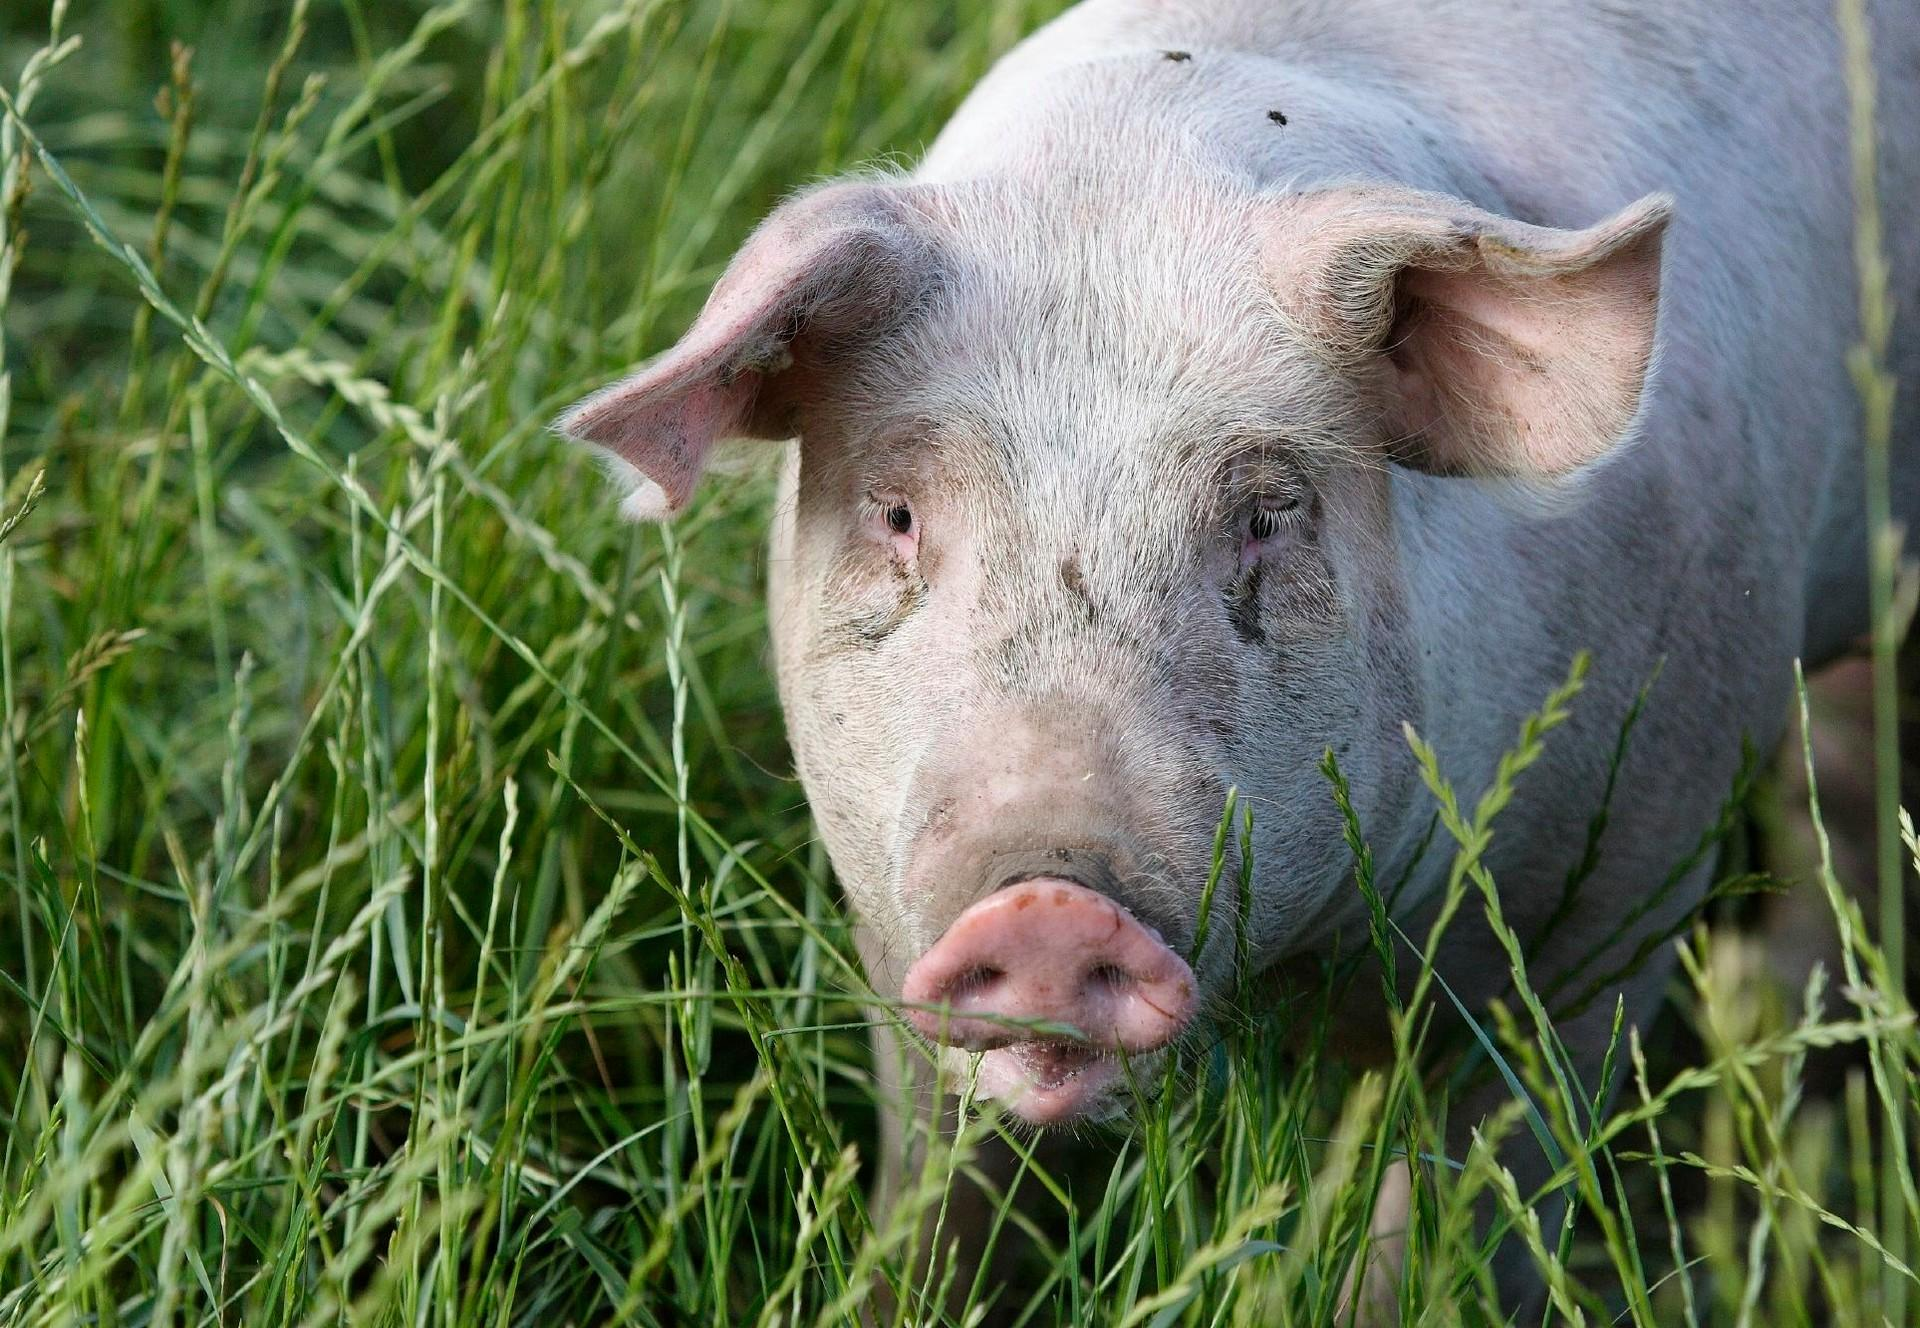 10 Facts about Pigs - Farm Animals - Topics - Campaigns